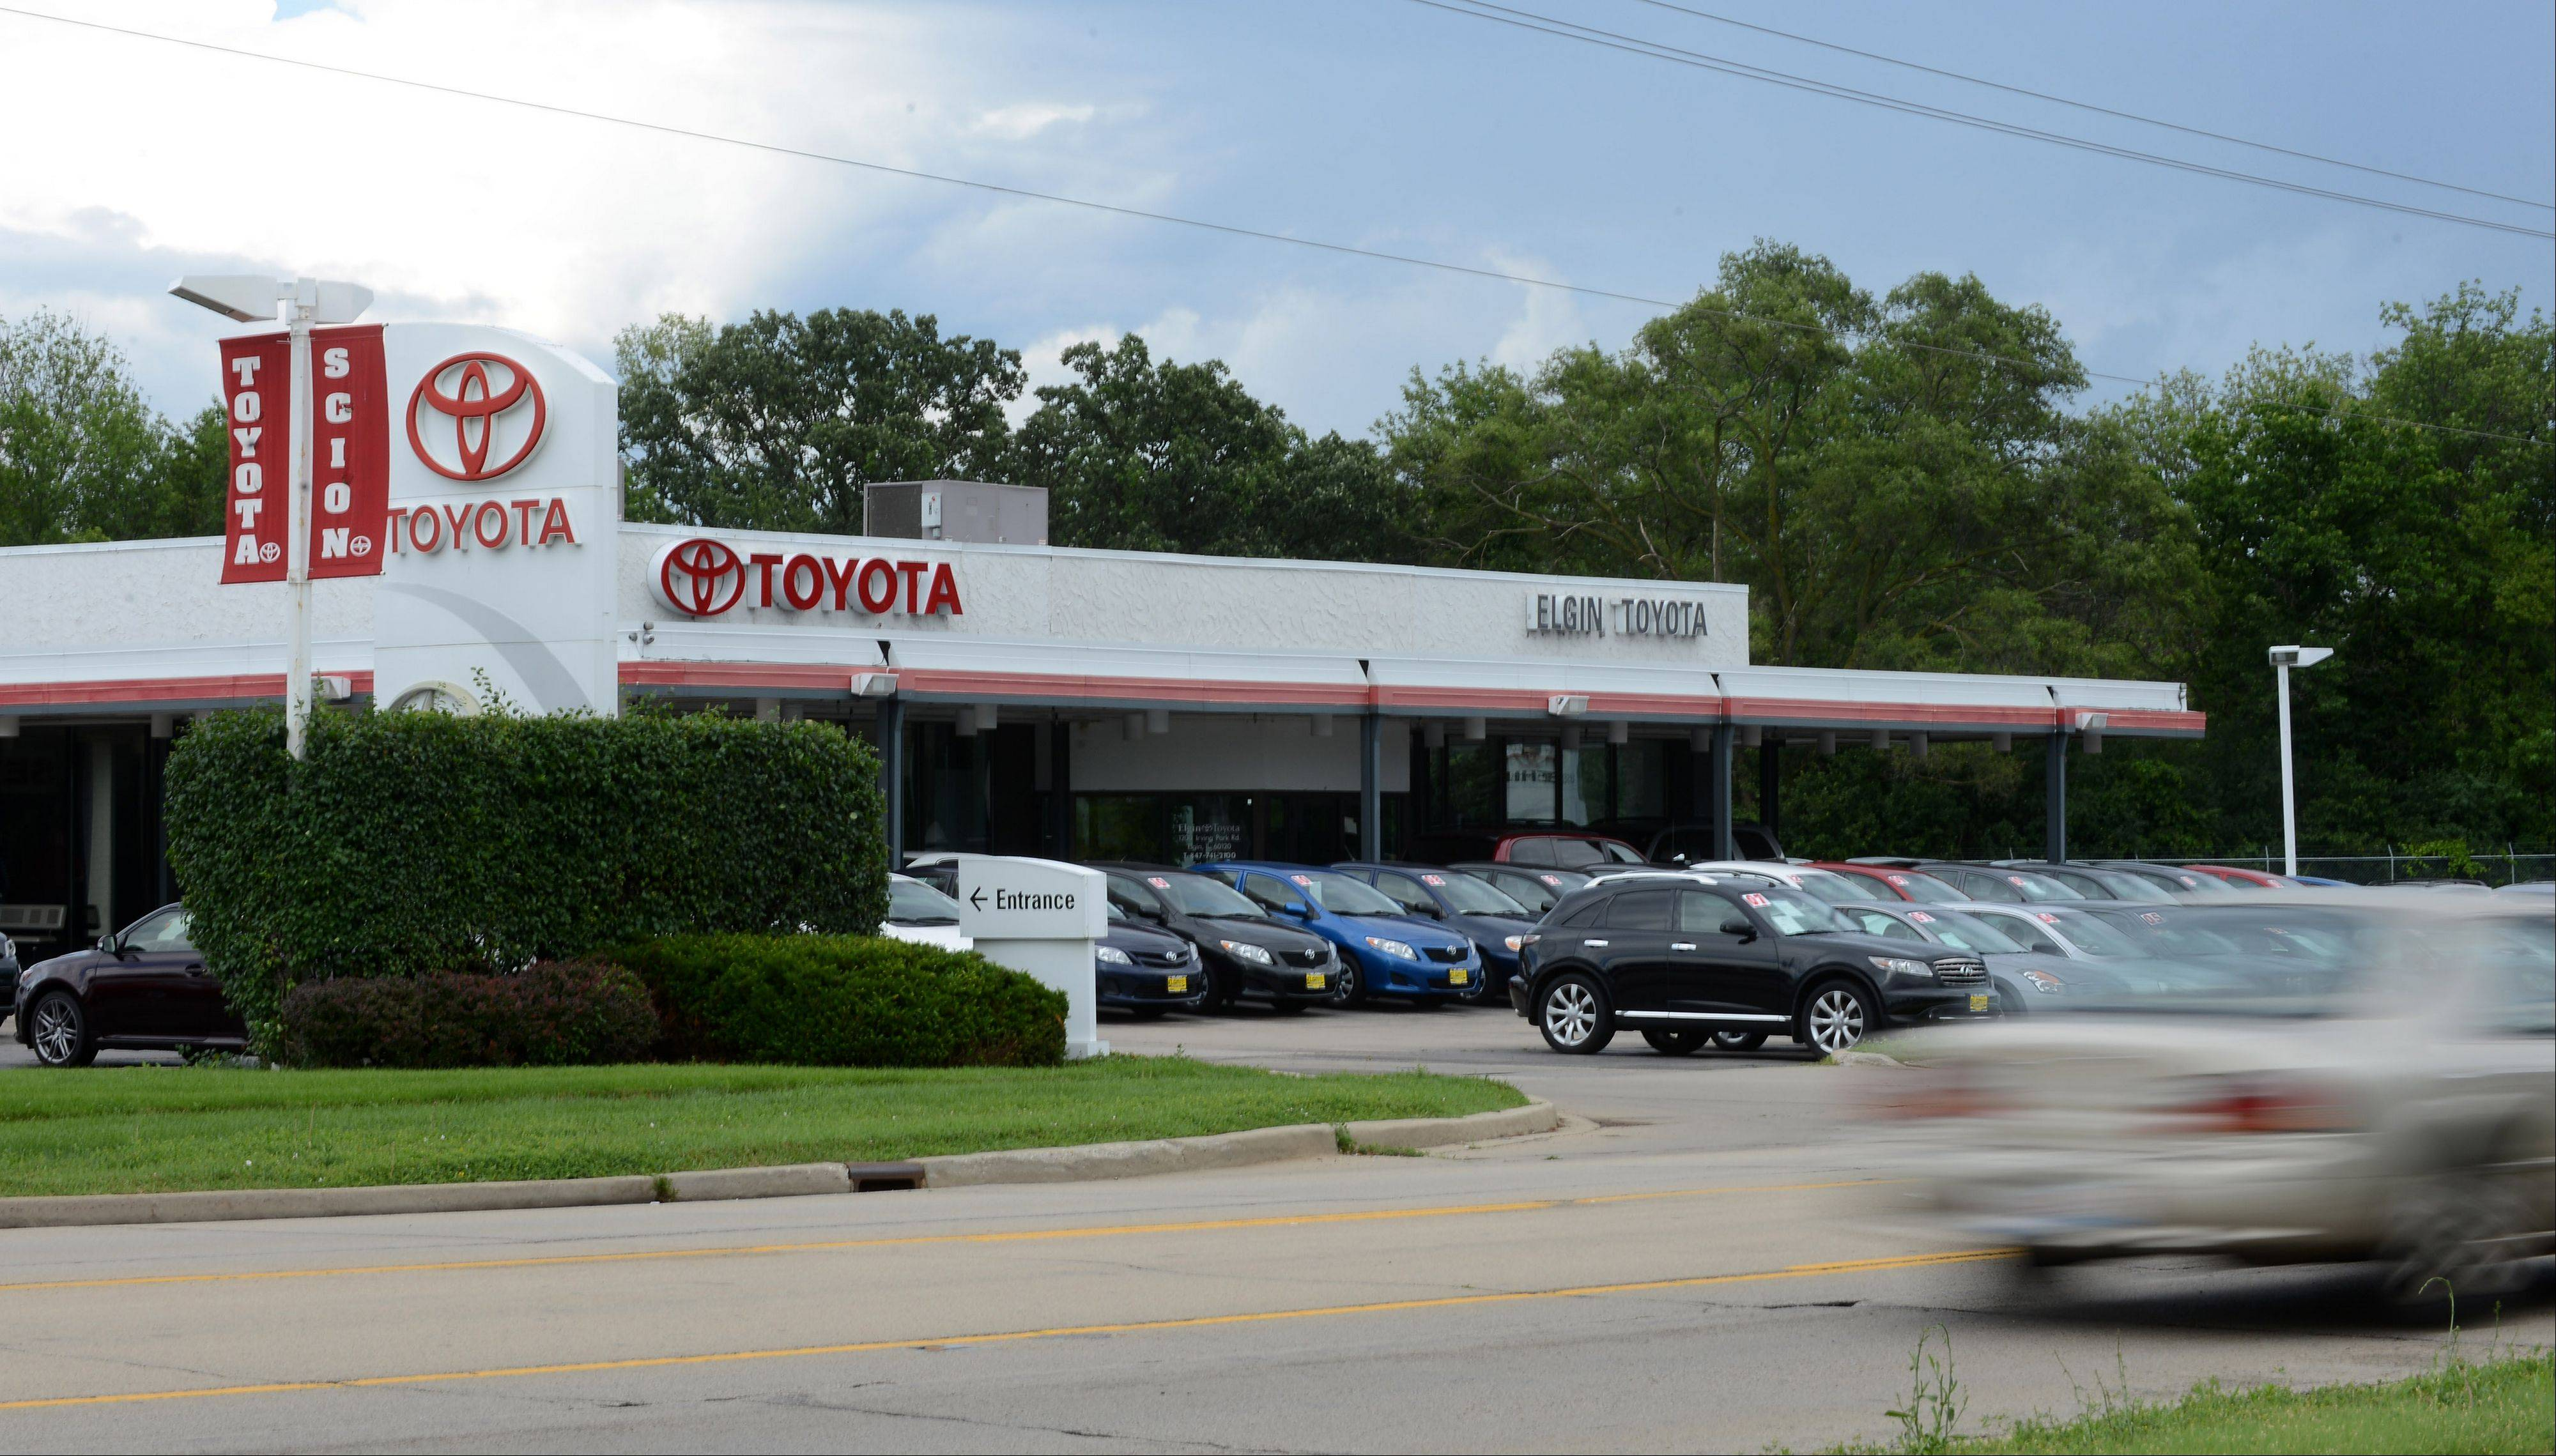 Elgin Toyota plans to relocate to Streamwood within the next year.